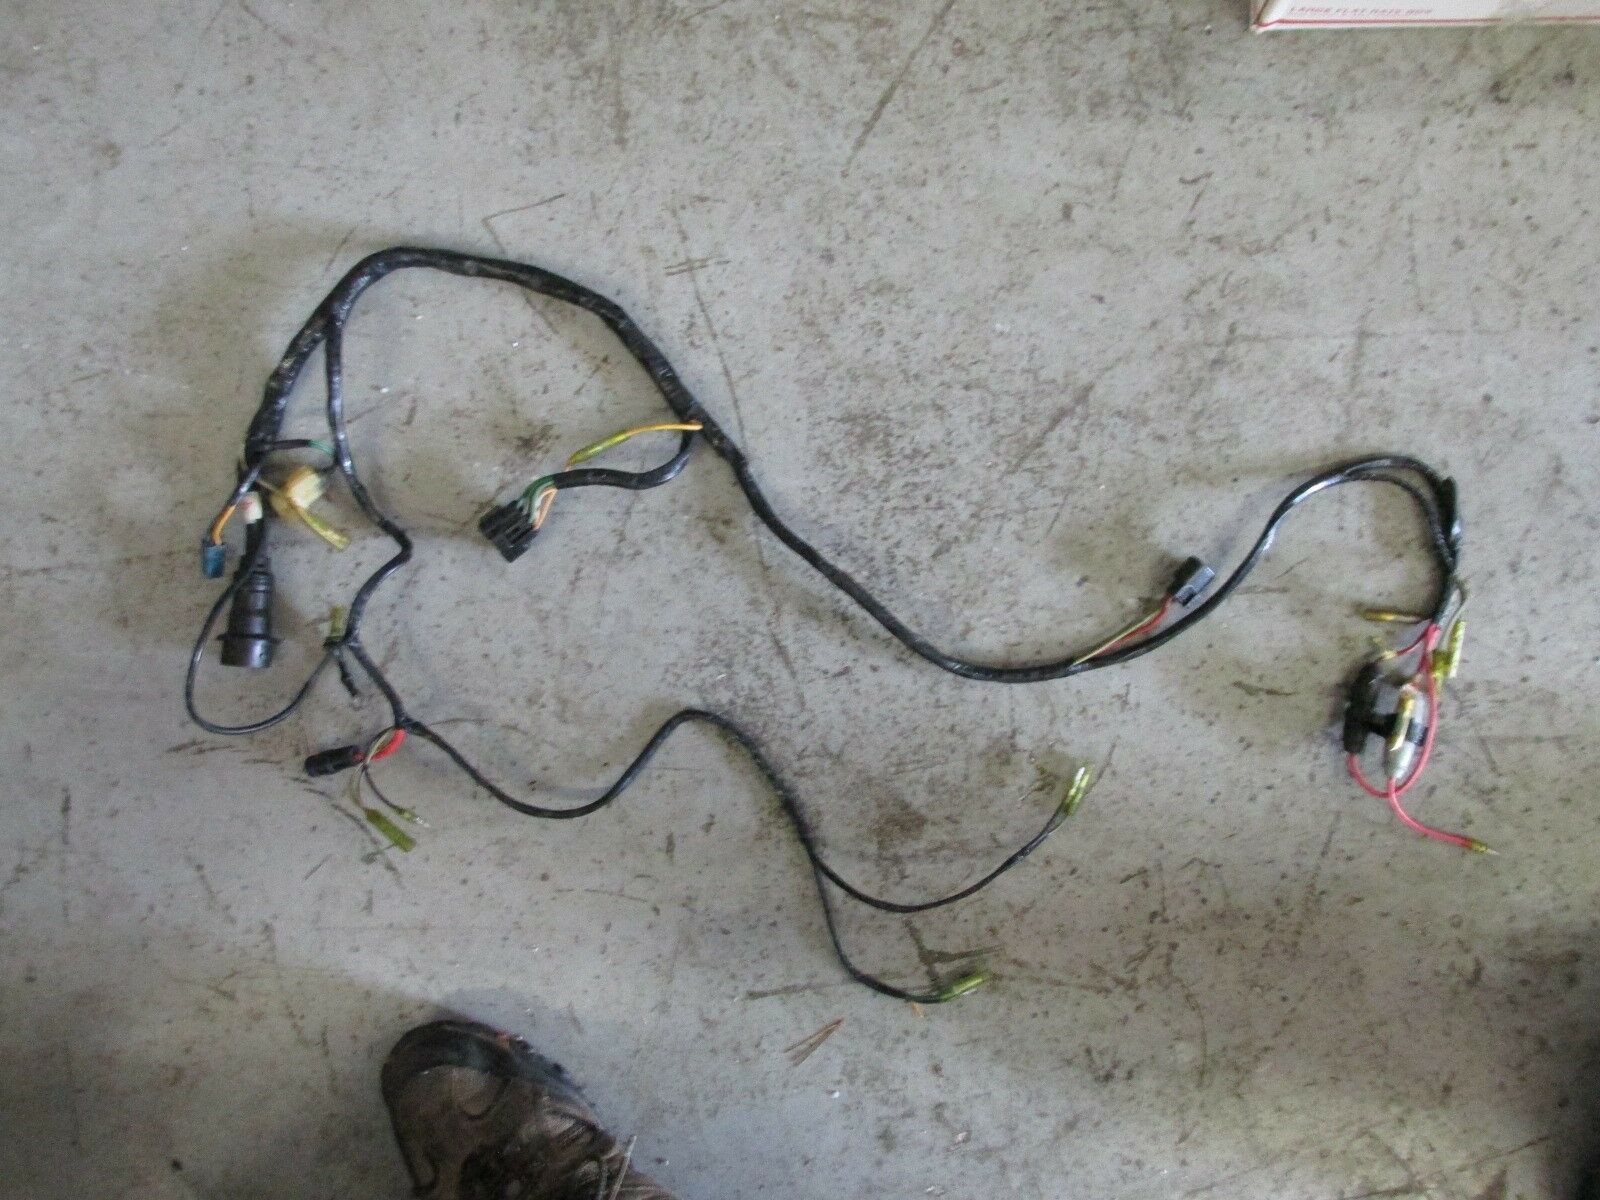 2005 Yamaha Outboard 150hp 2 Stroke Engine Wiring Harness 64d 82590 1 Of 3only Available